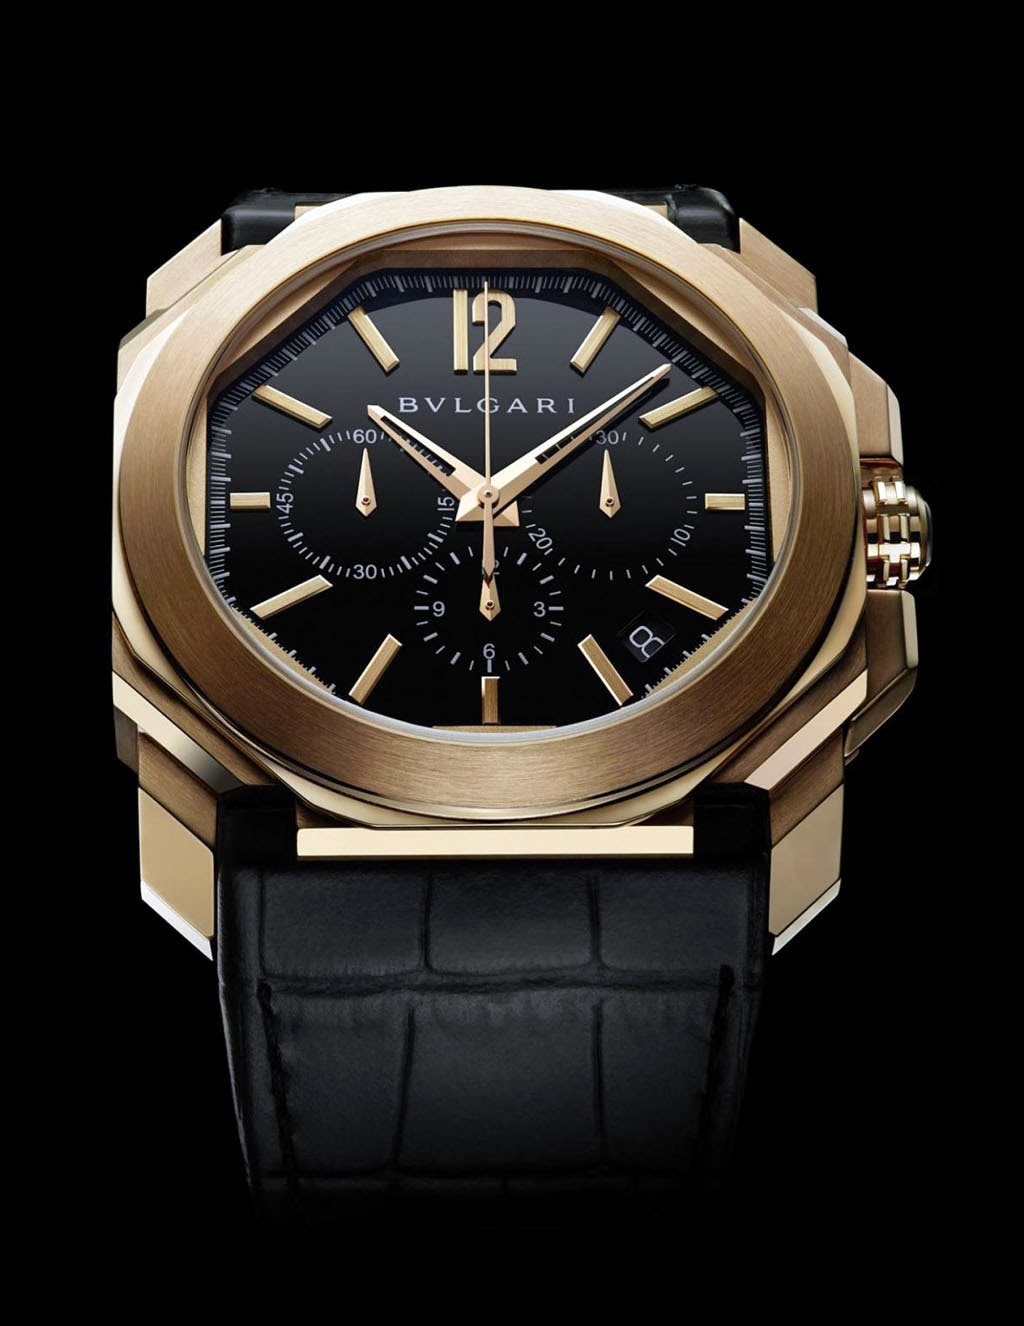 anteprima-baseworld-2014-bulgari-octo-chronograph-in-stainless-steel-pink-gold_0-100_1